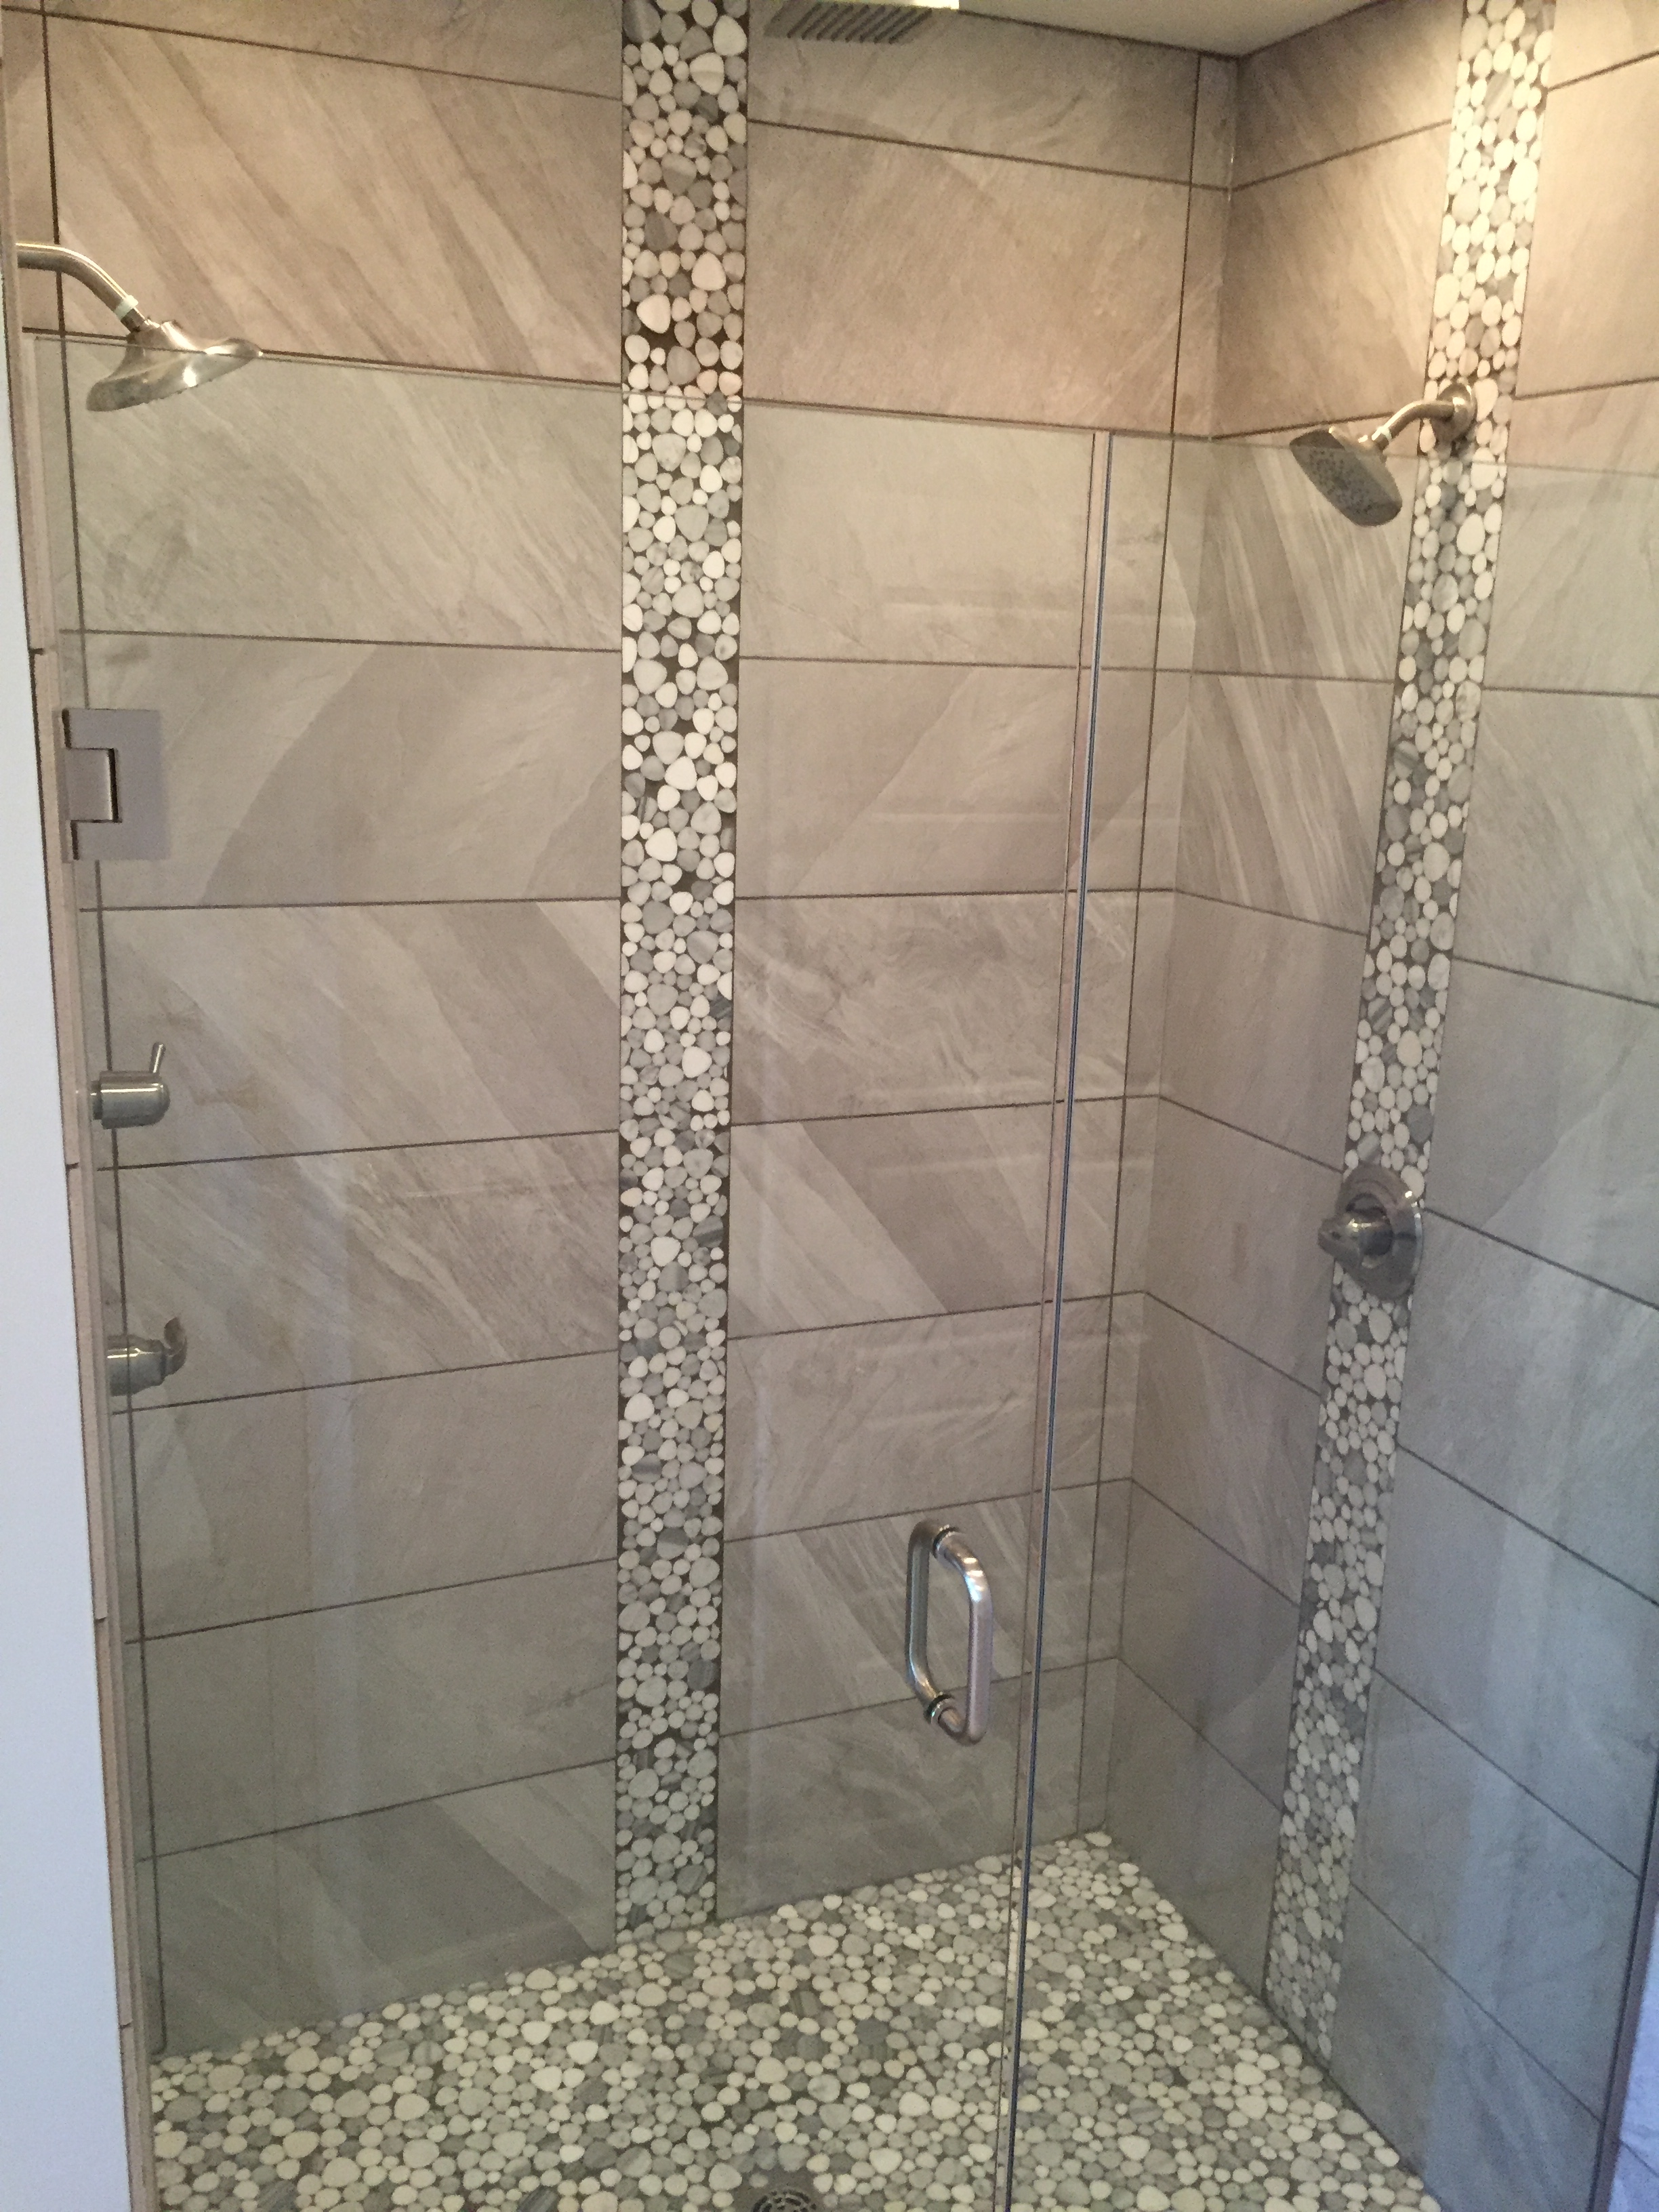 Tile Shower with Dual Shower Heads